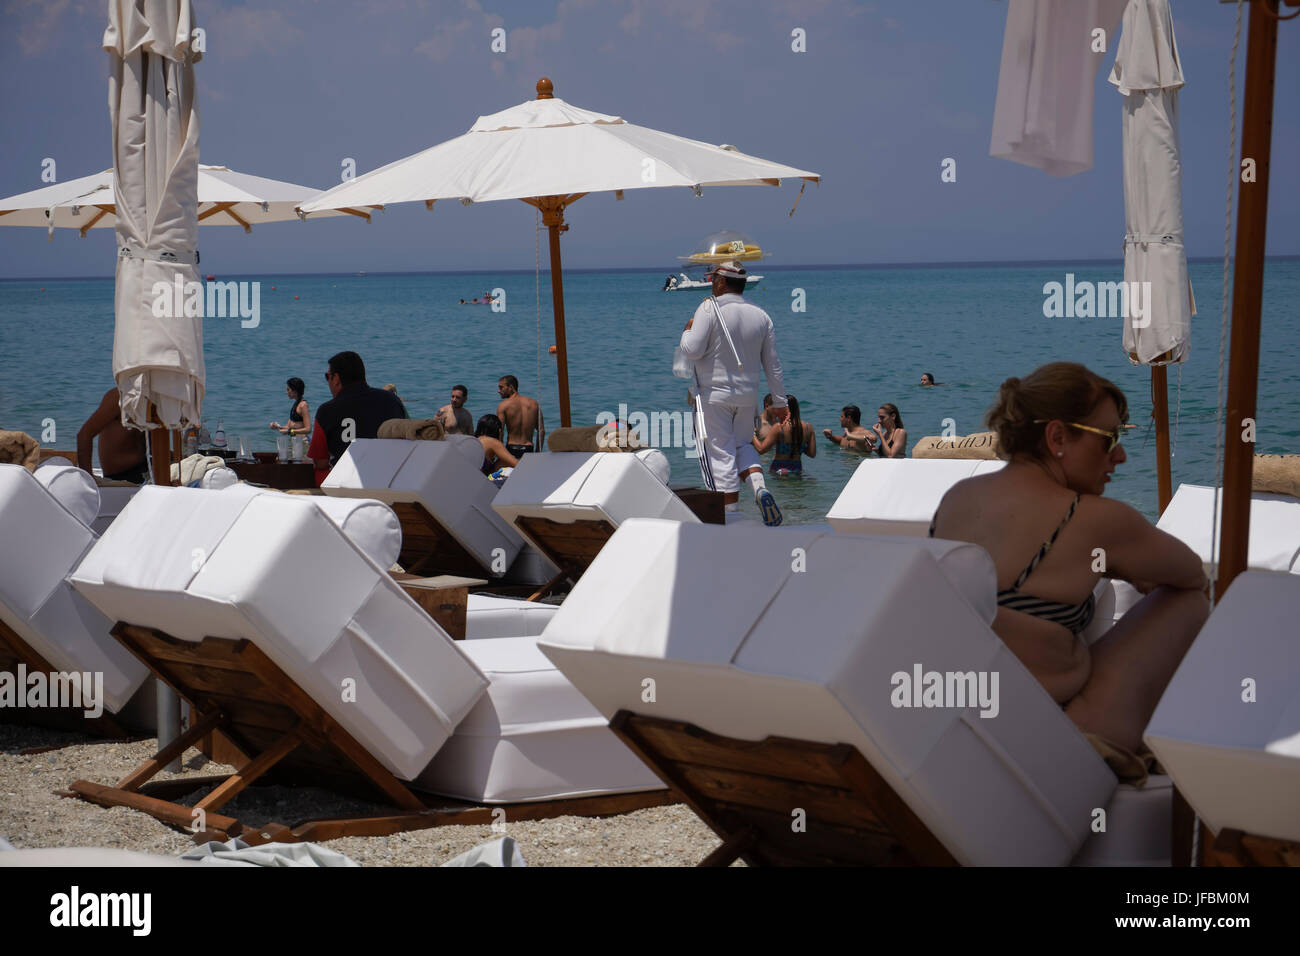 Beach vendor selling corn balancing the plate on his head on a hot summer day by a beach bar with sun decks. - Stock Image